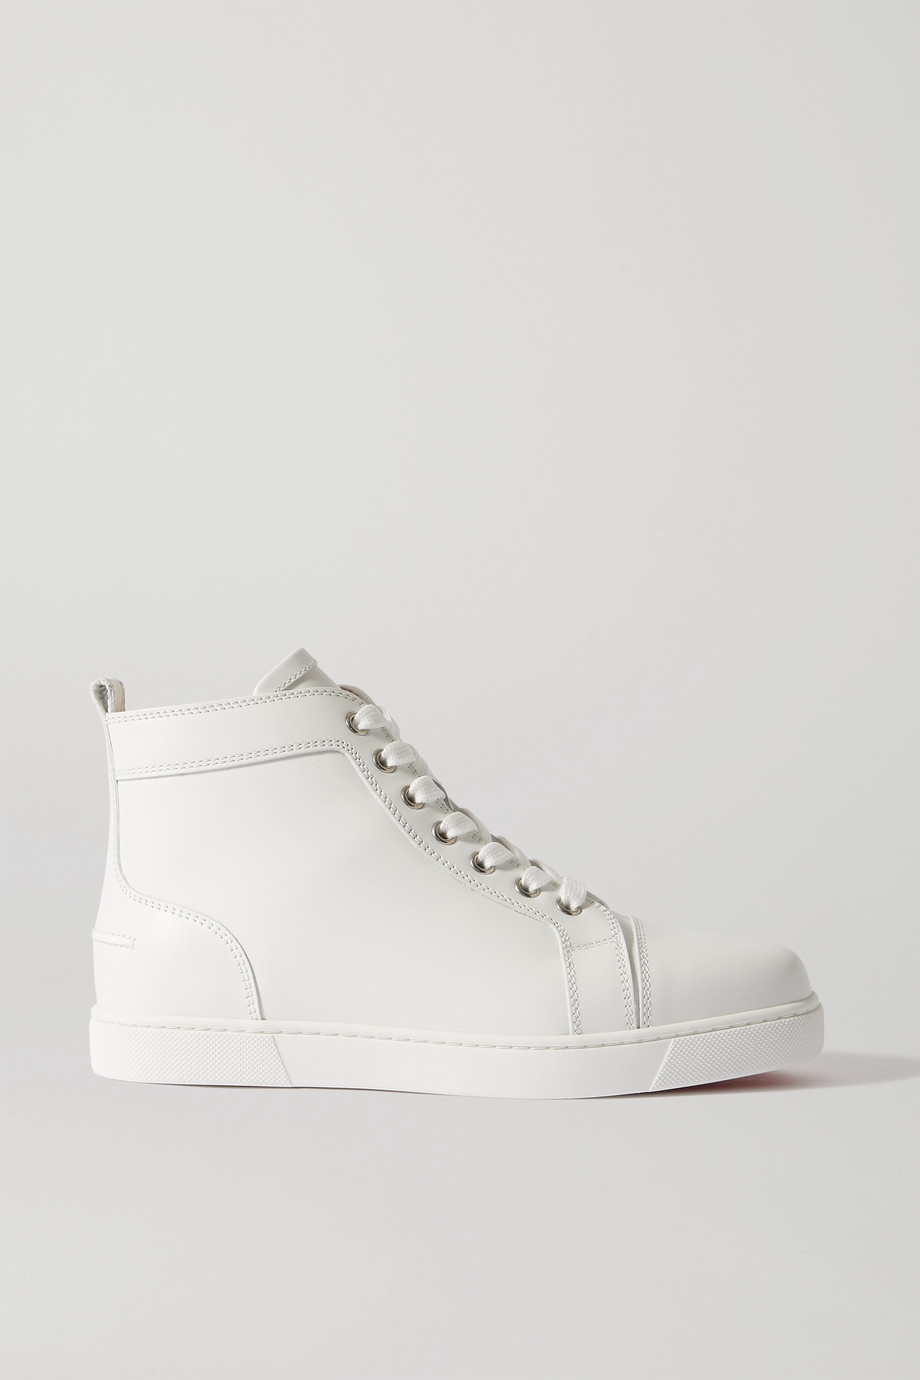 CHRISTIAN LOUBOUTIN Louis logo-embellished leather high-top sneakers